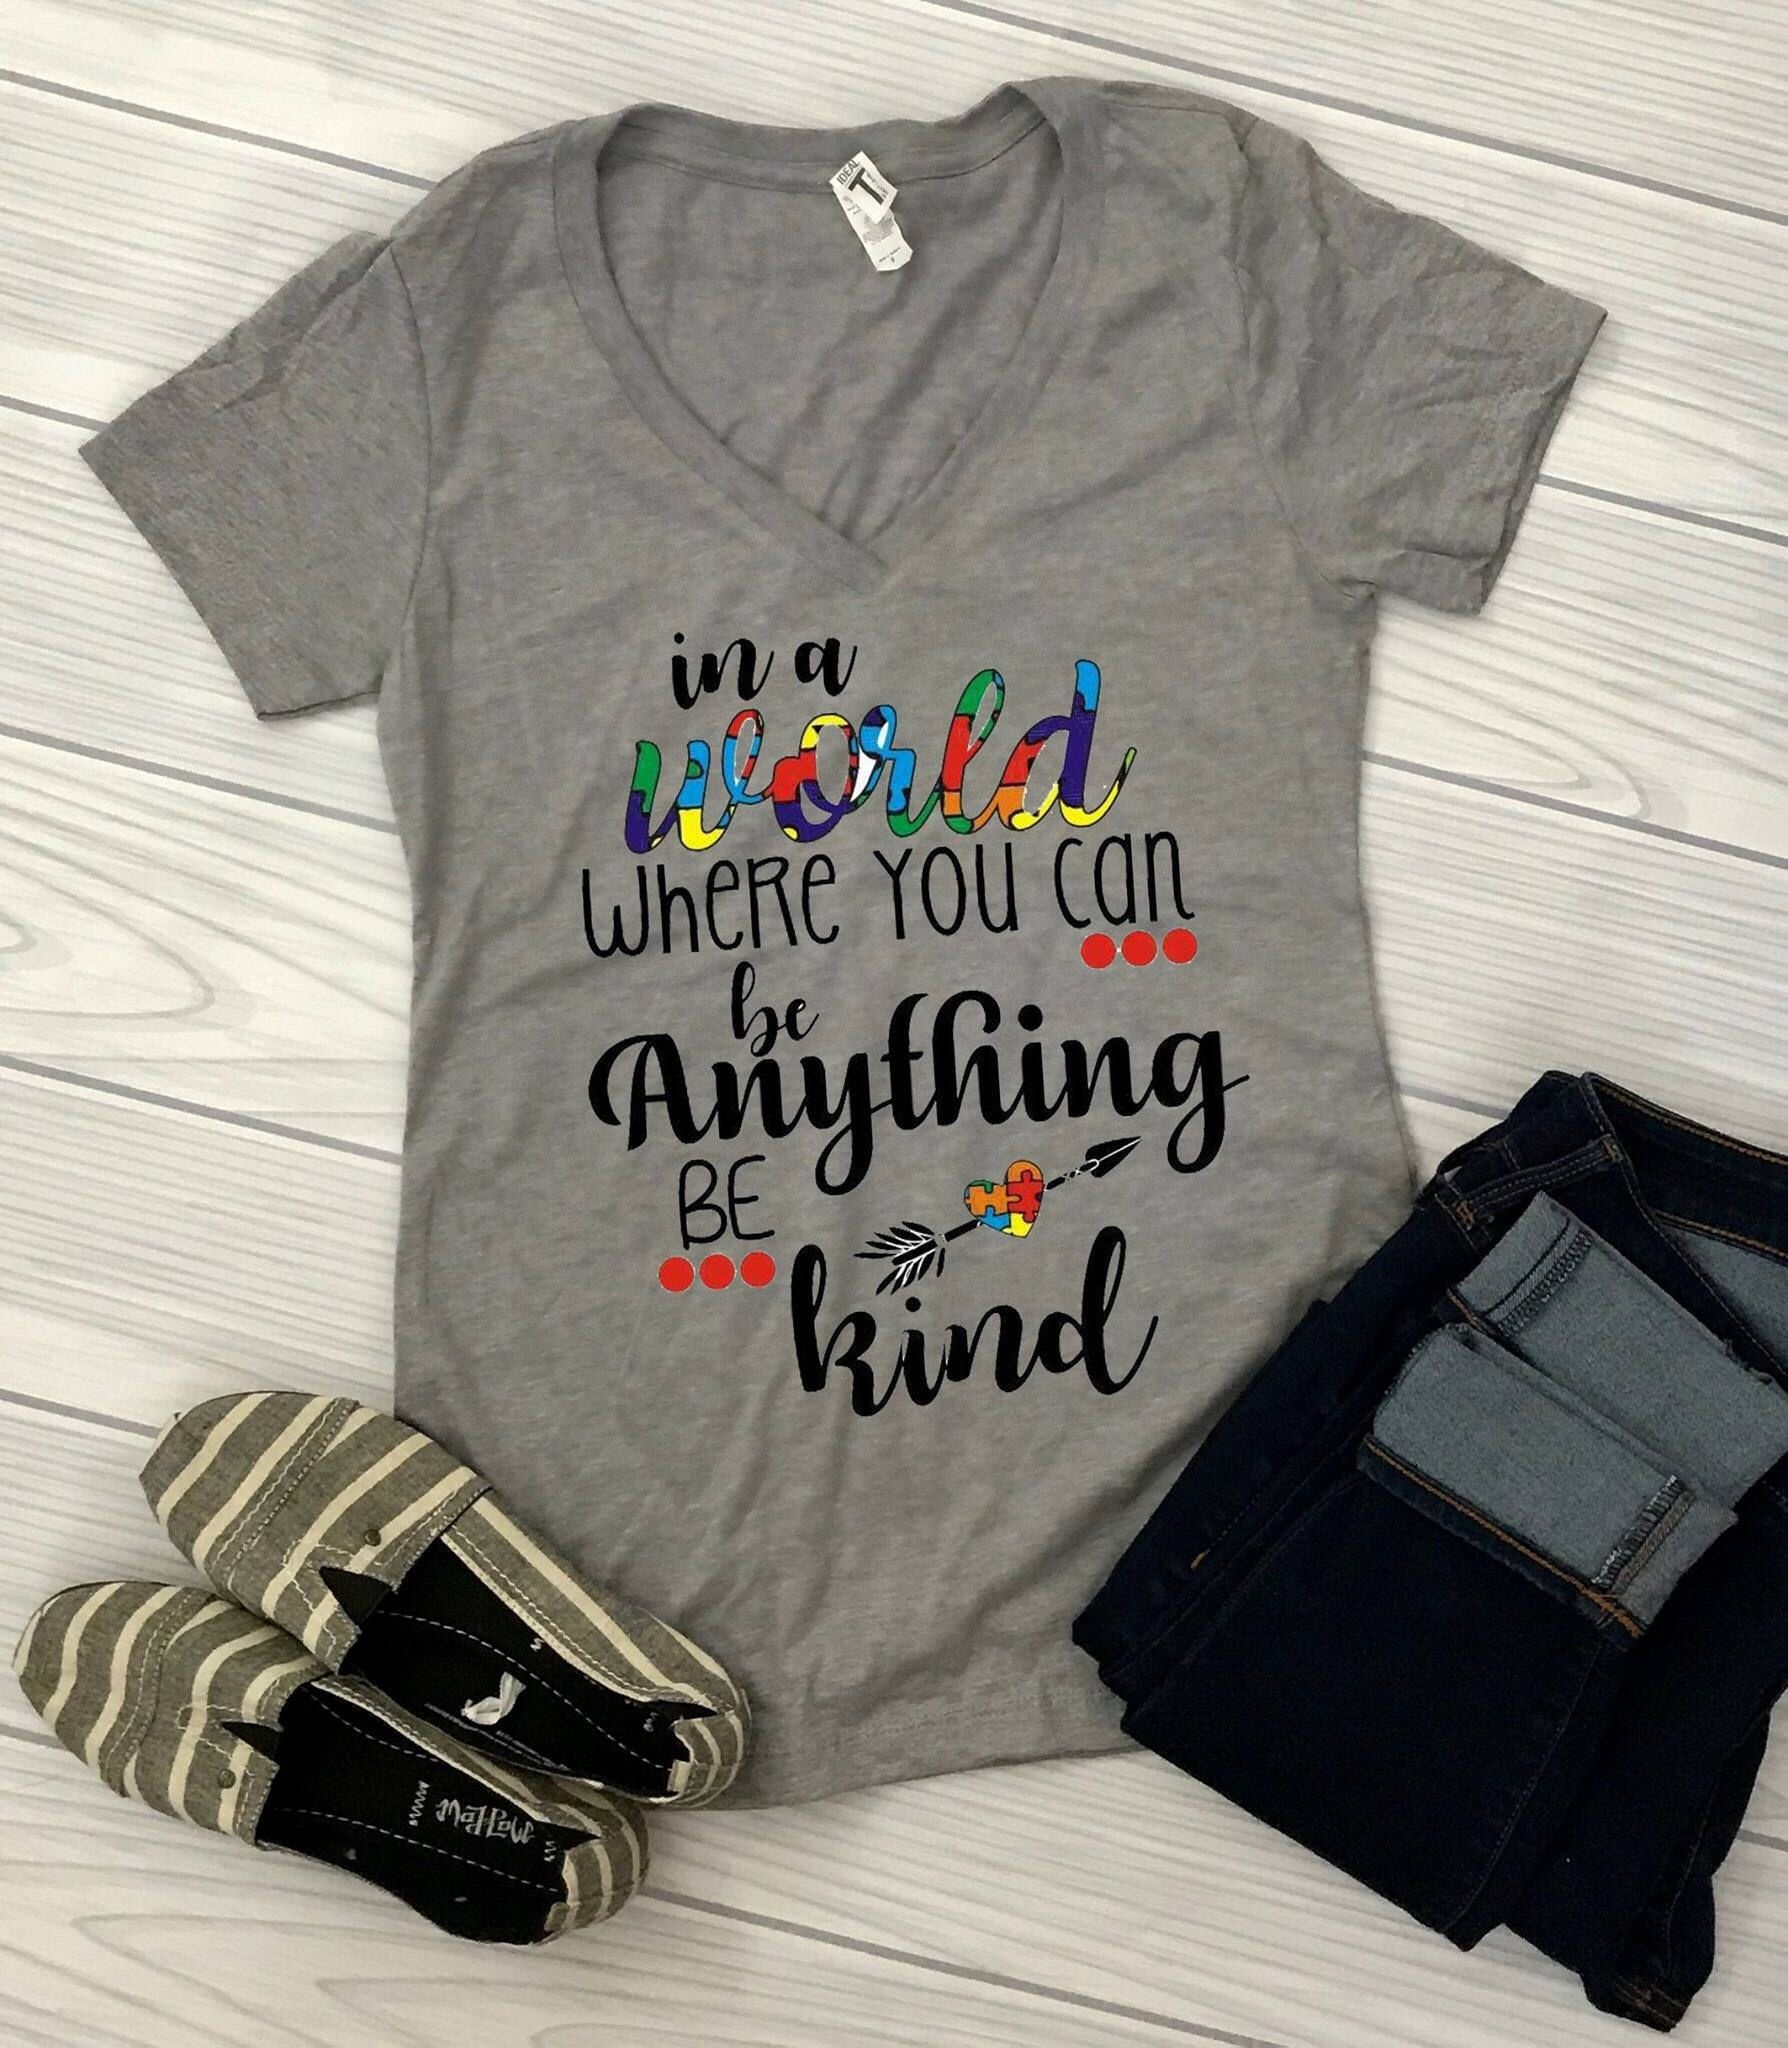 Autism Shirts Be Kind Awareness Svg Speaks T Heart Printed Circuit Board Tshirts Unisex Triblend Tshirt Excited To Share The Latest Addition My Etsy Shop Iron On Transfer Puzzle Piece Boys And Girls Shirt Transferbe